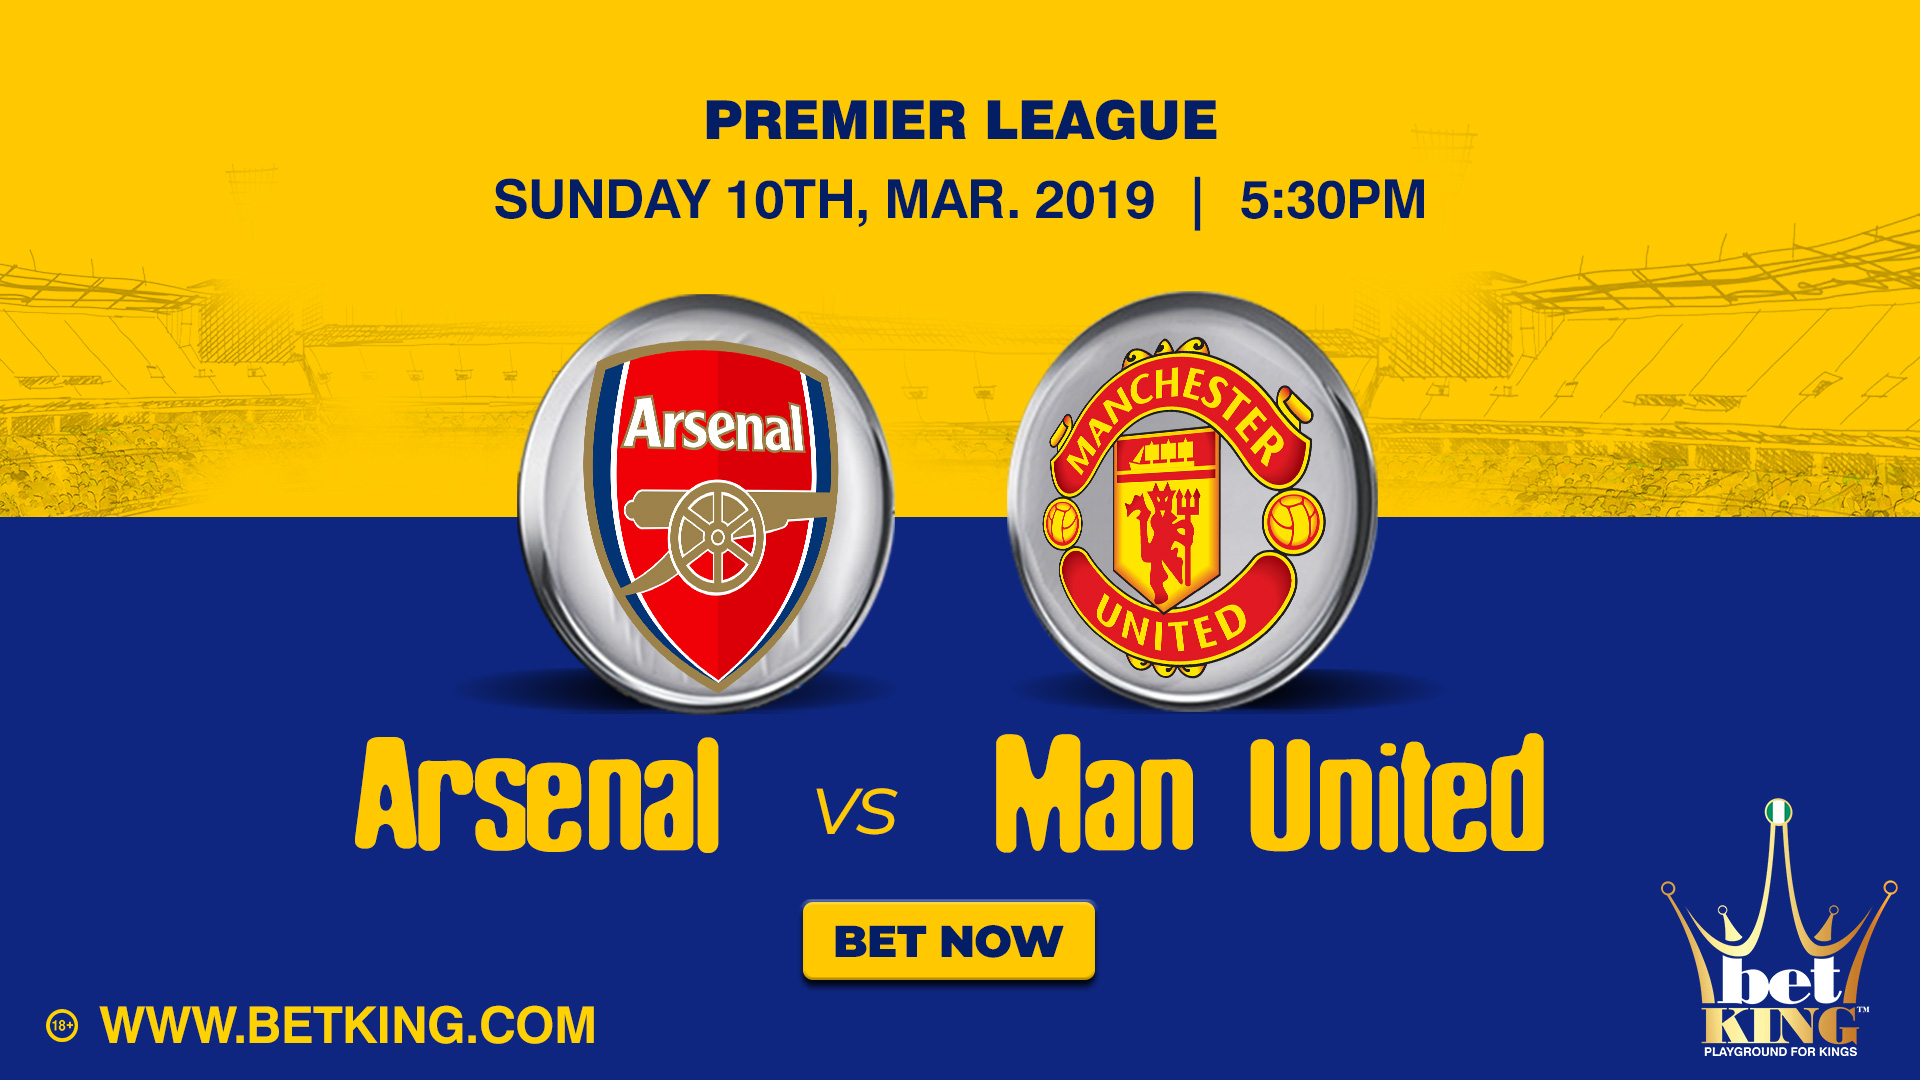 Betking Arsenal Manchester United